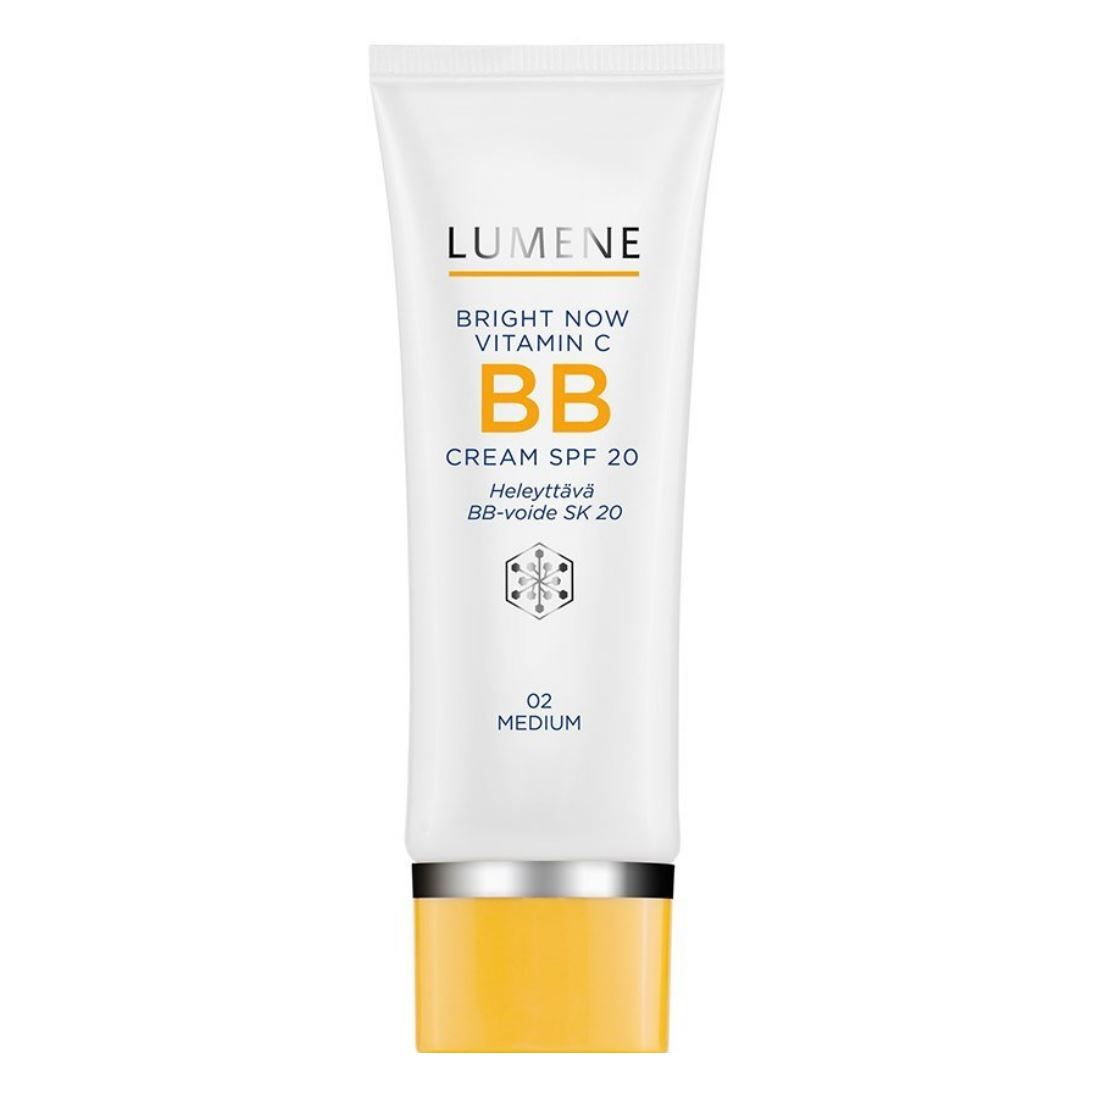 c746298cc0e Lumene Bright Now Vitamin C BB Cream SPF 20 reviews, photos ...